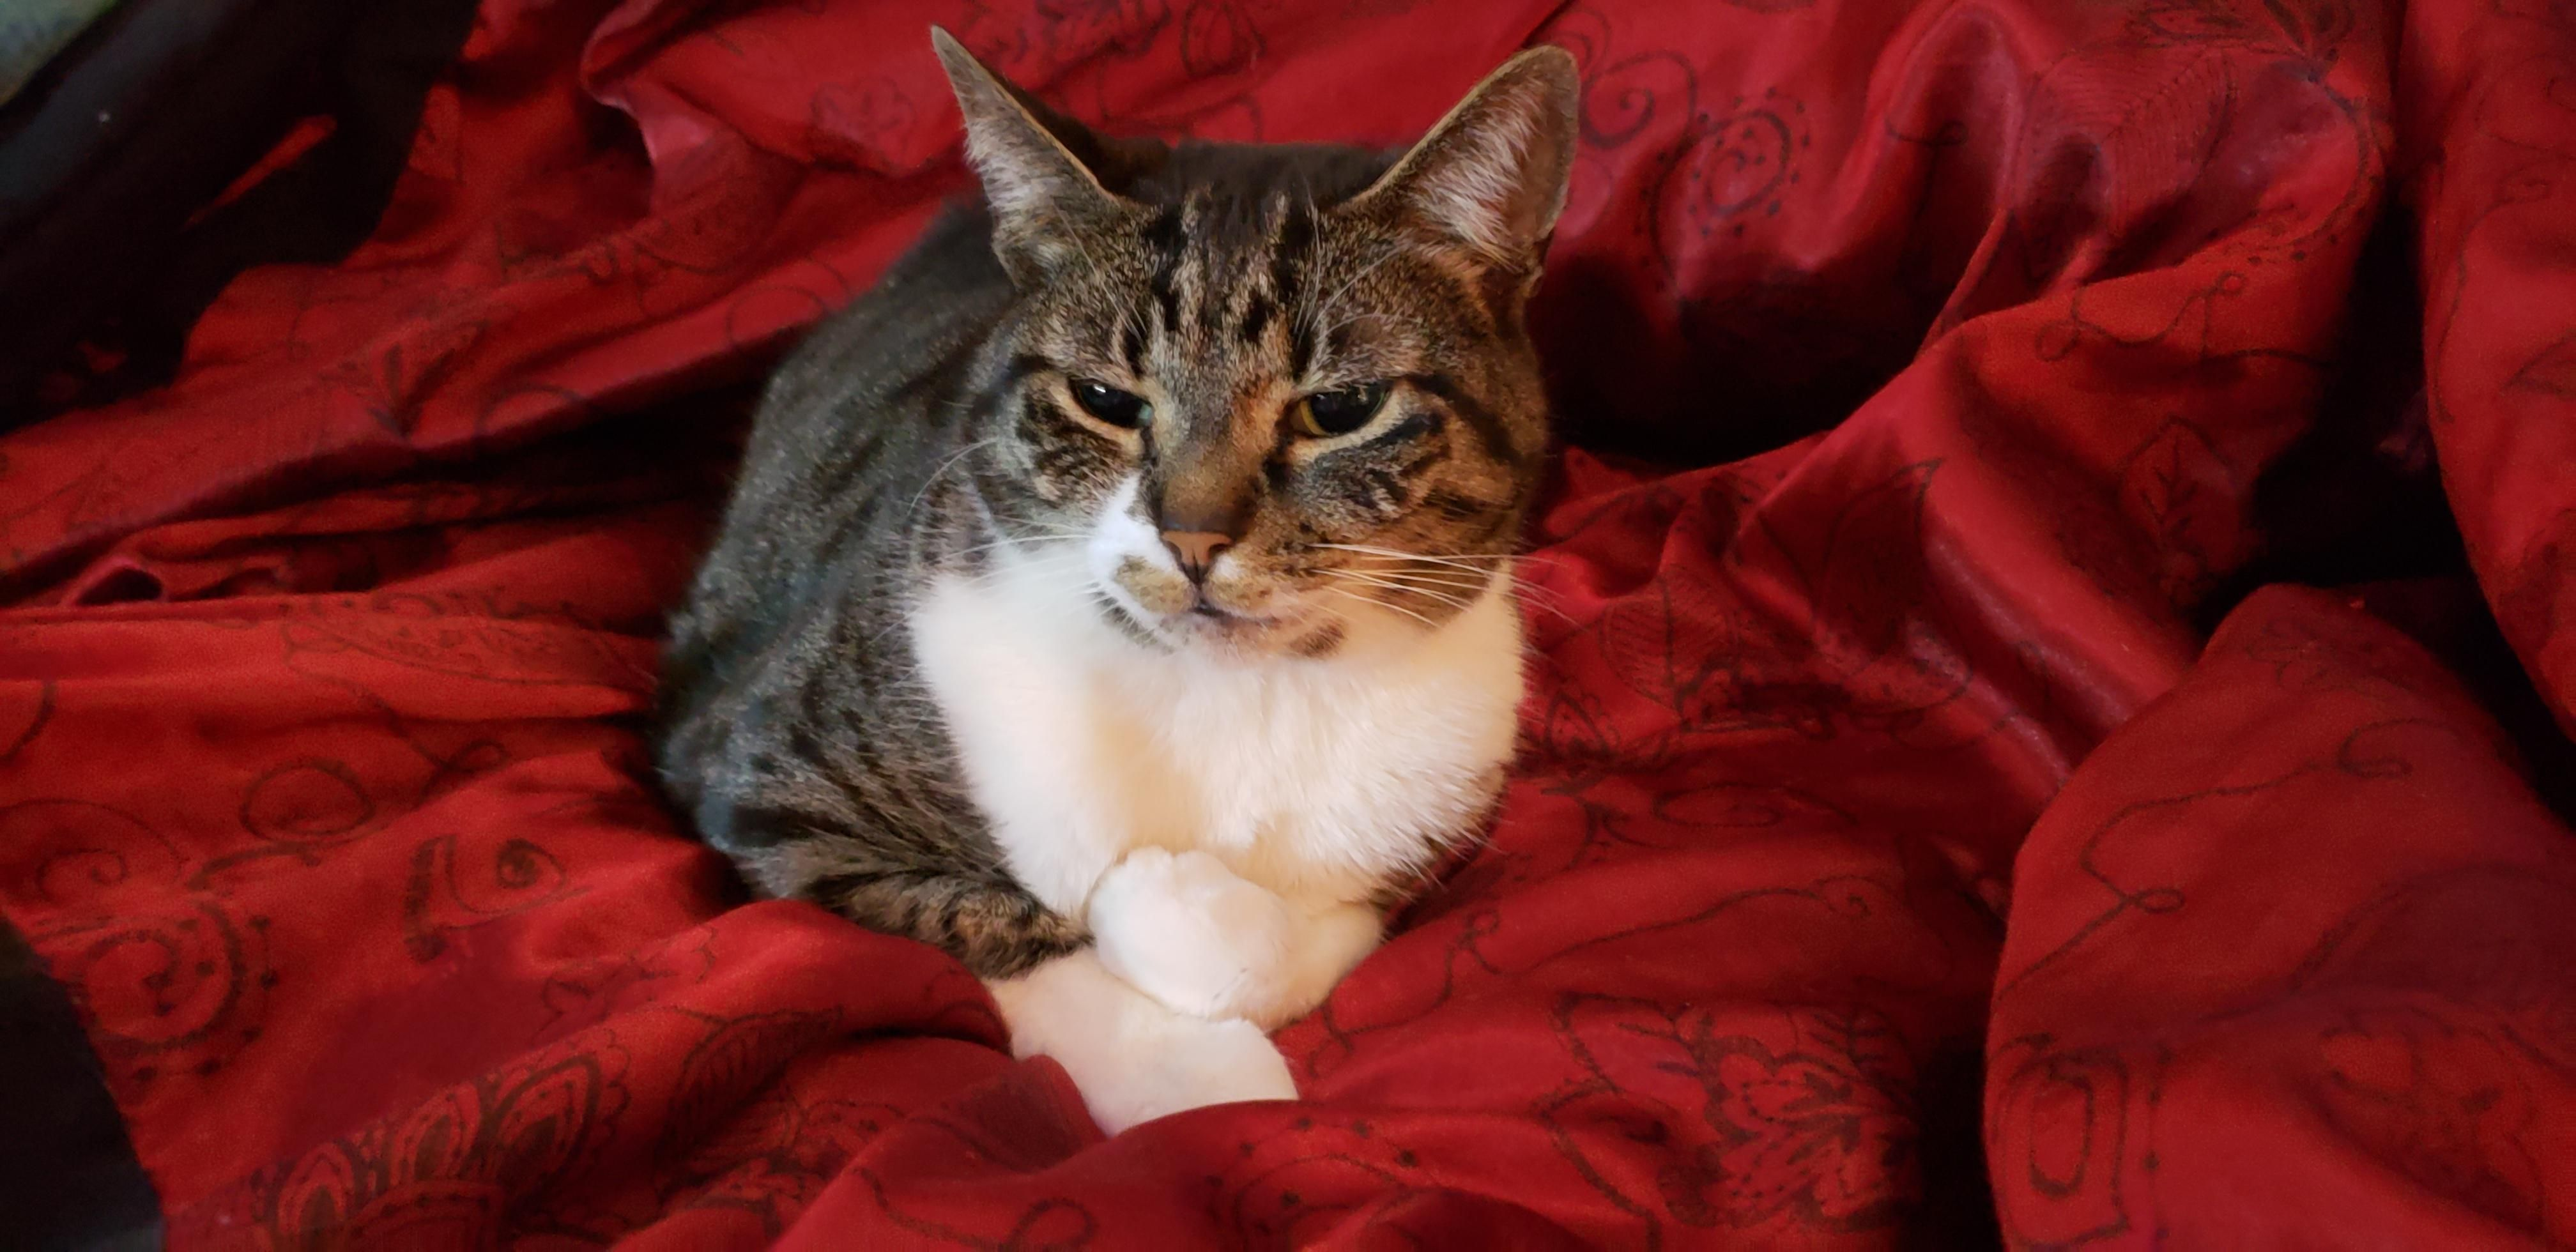 Nyx The Classy Loaf Kitten Pictures Cat Rescue Cats